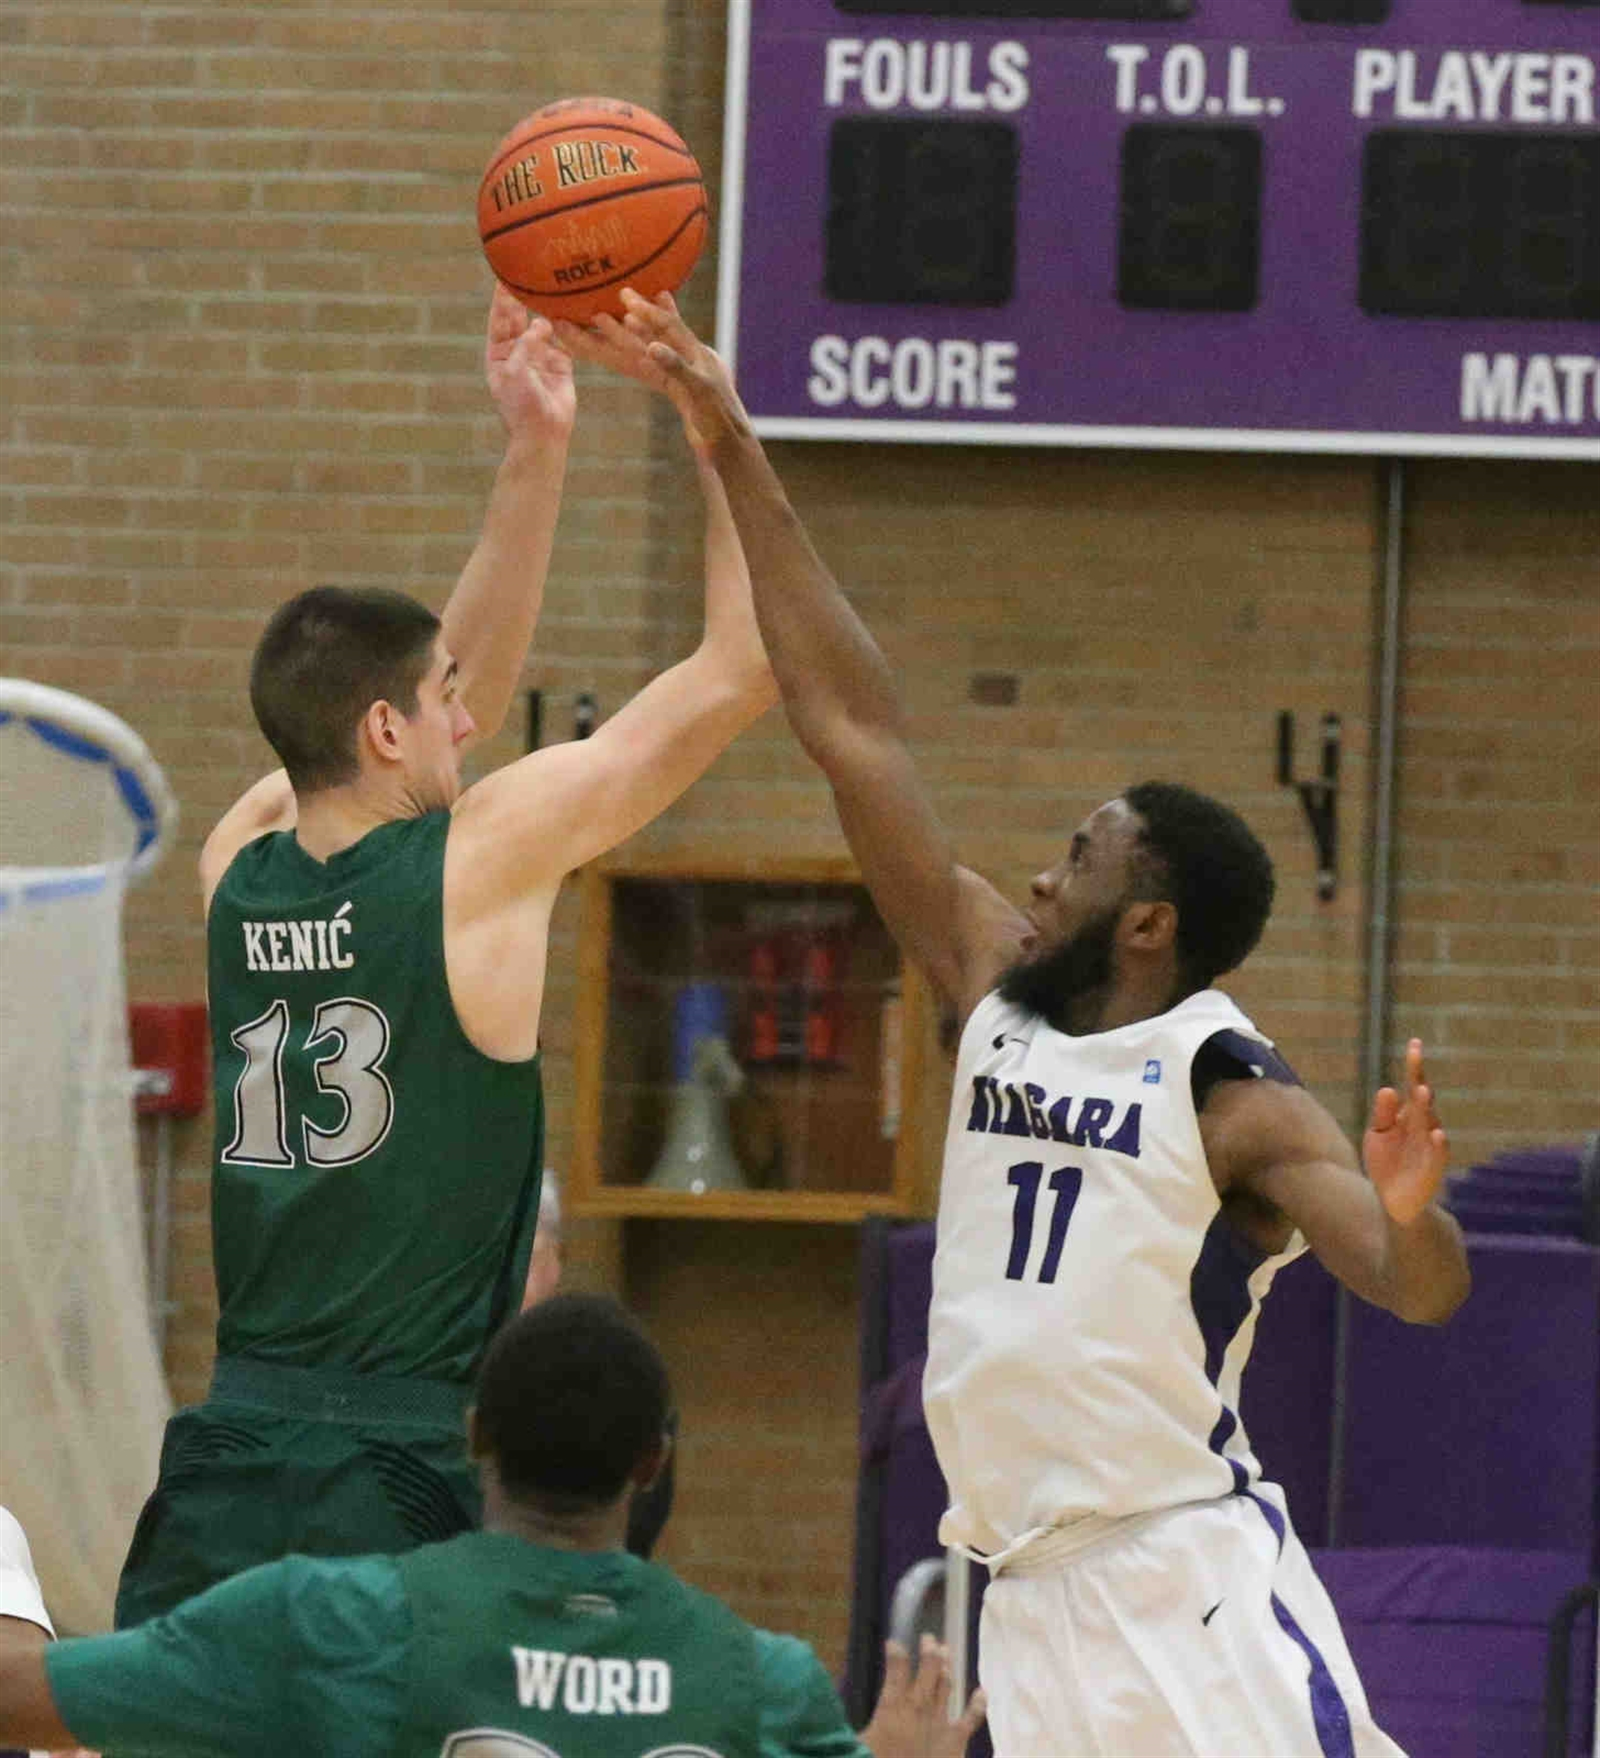 Niagara Purple Eagles forward Marvin Prochet (11) blocks the final shot of the game by Cleveland State Vikings forward Stefan Kenic (13) for the win.